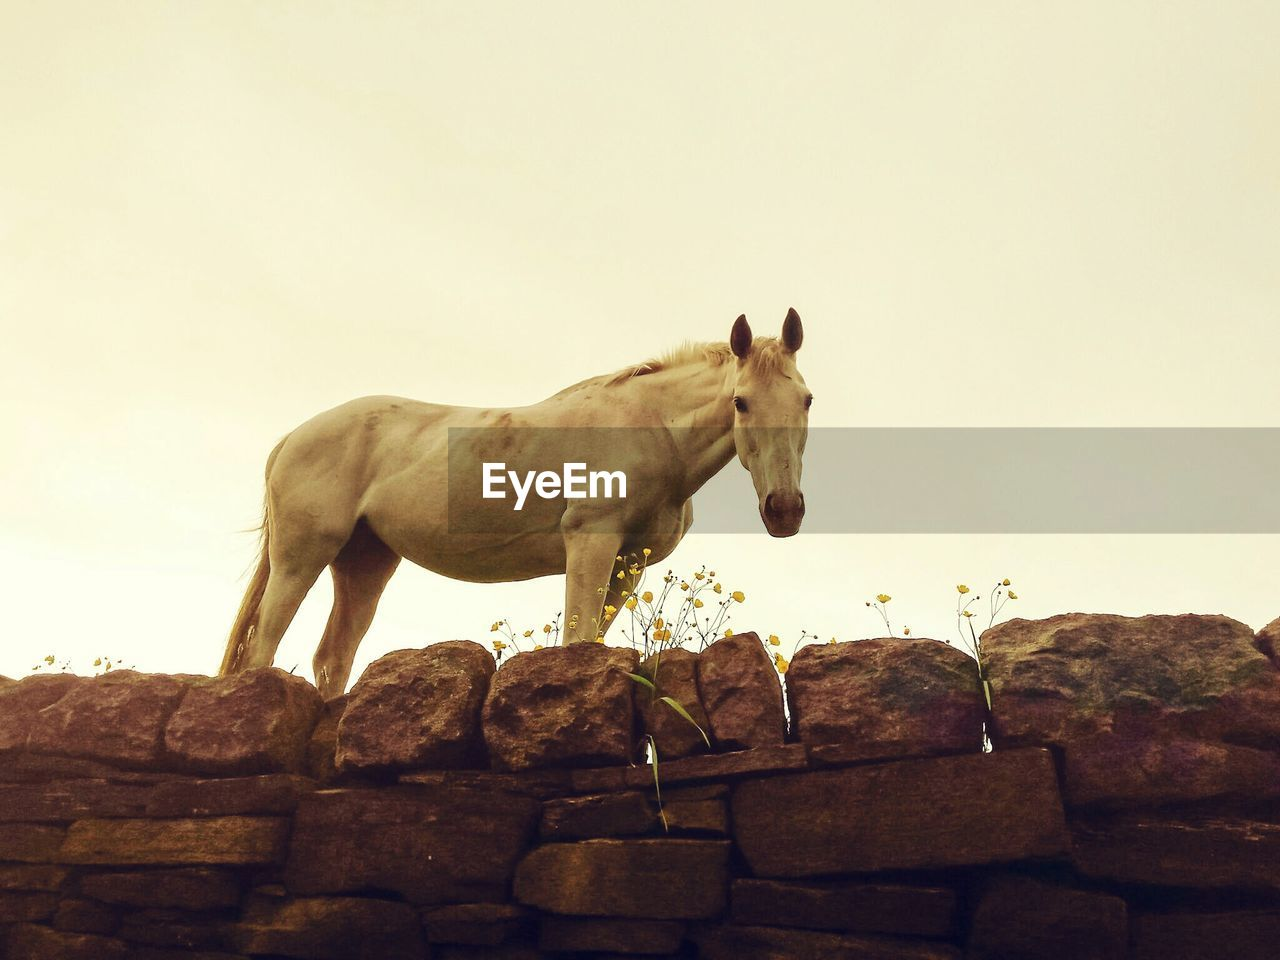 Low angle view of horse on stone wall against clear sky